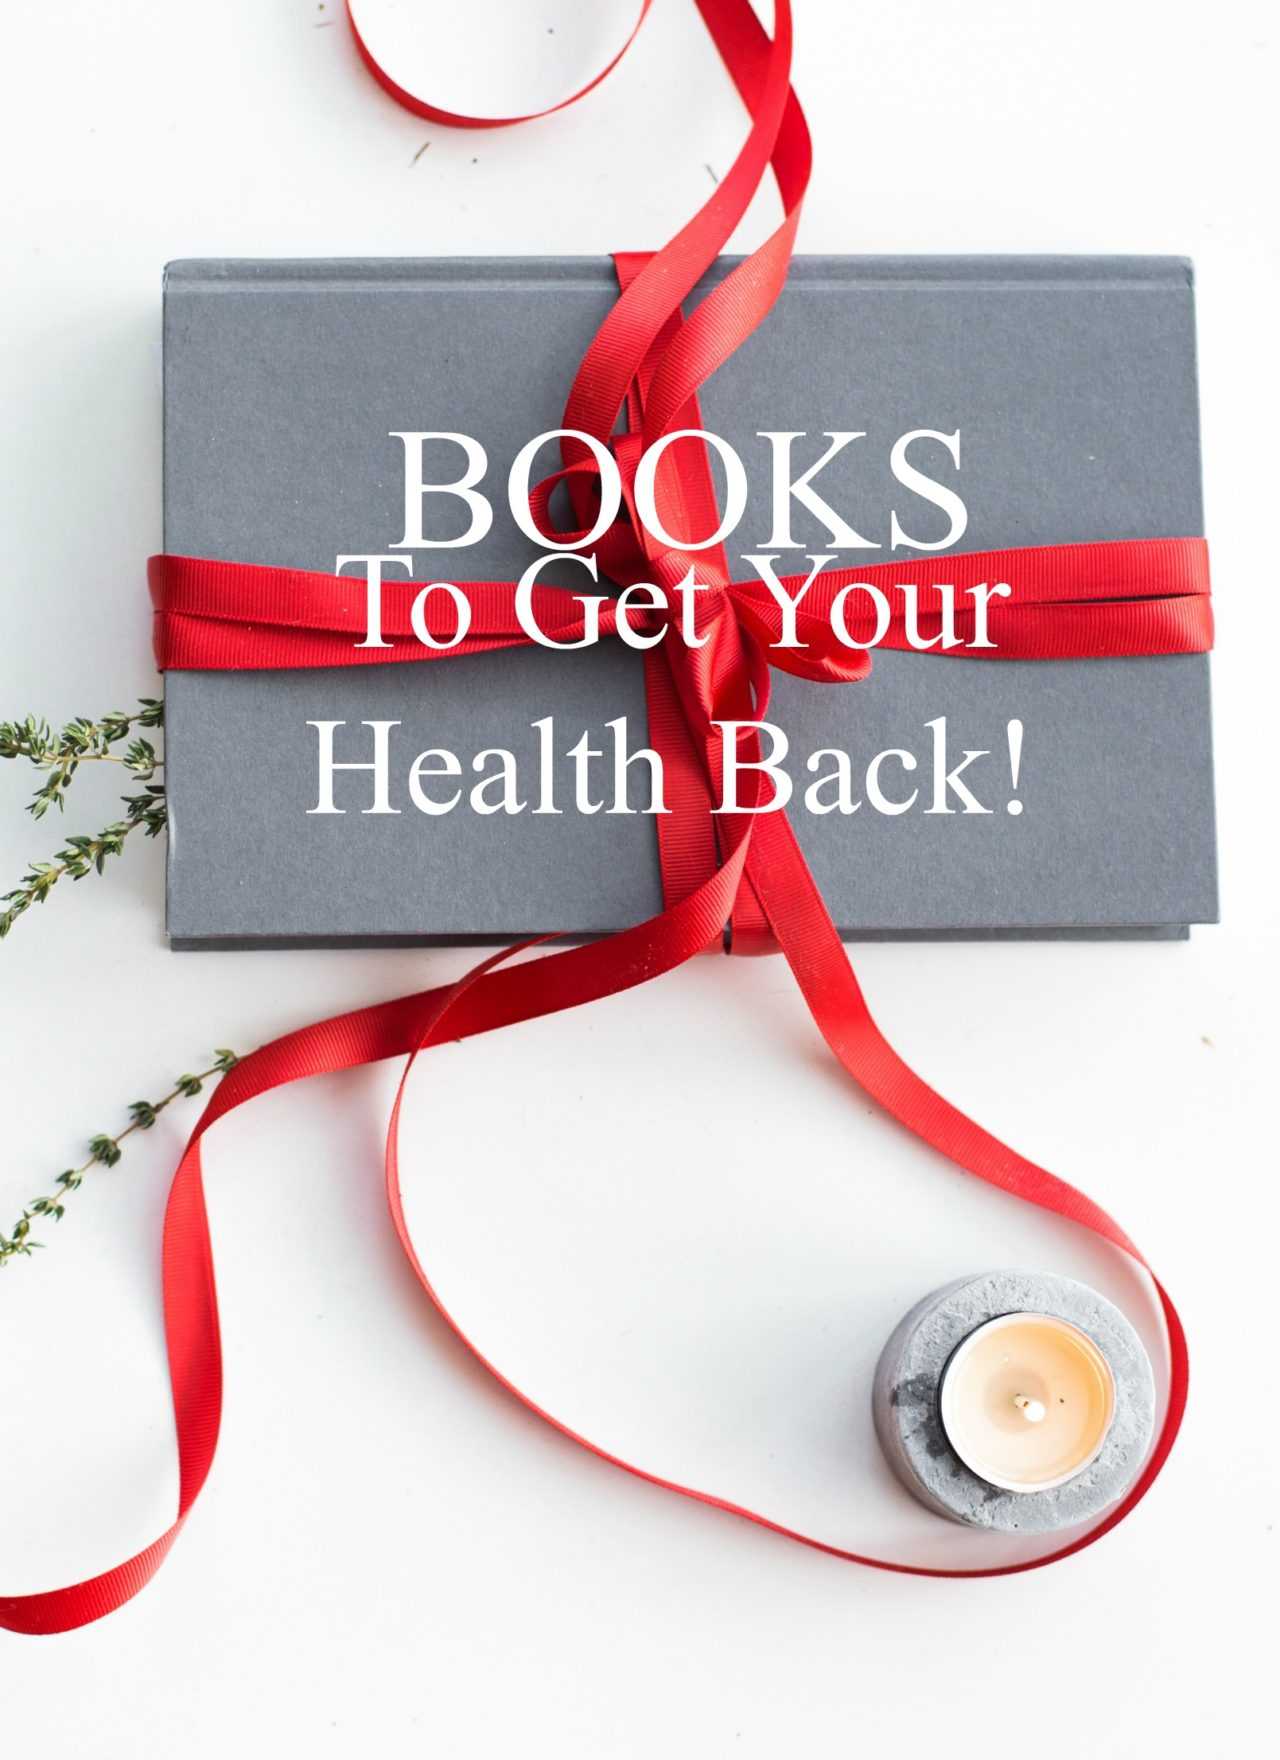 3 Books on Chronic Illness Causes & How to Regain Your Health